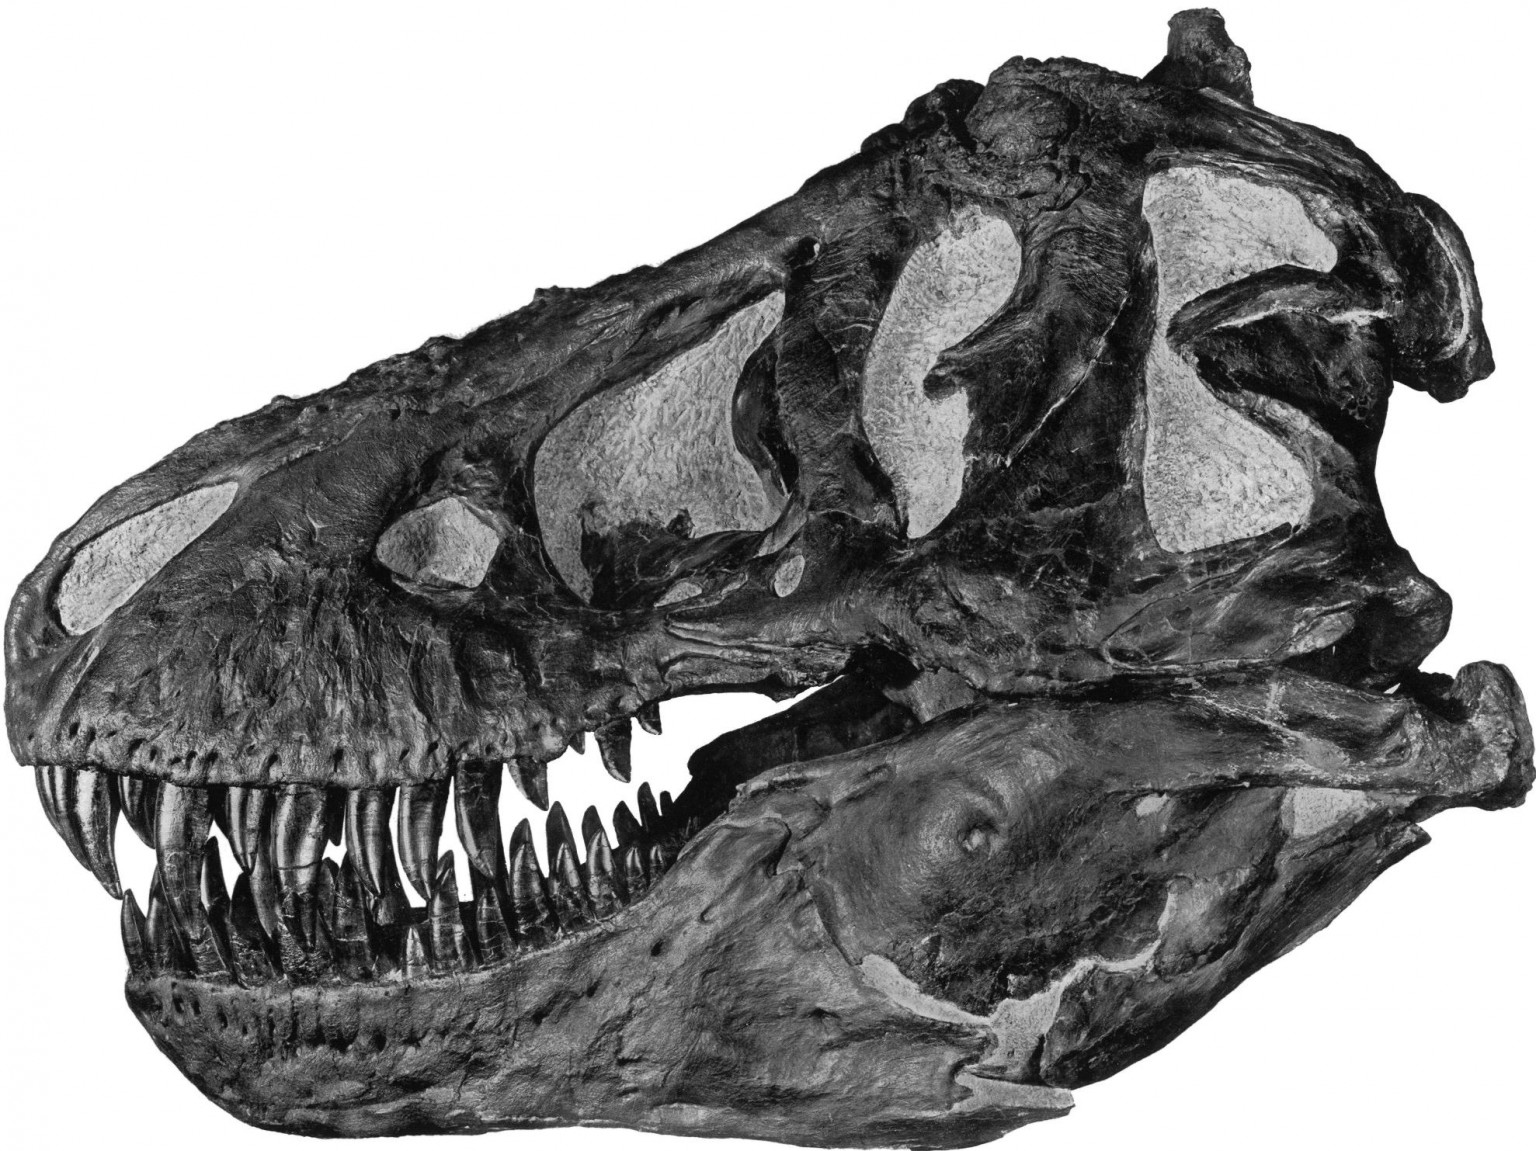 A Tyrannosaurus rex skull, similar to the one excavated by David in 2003